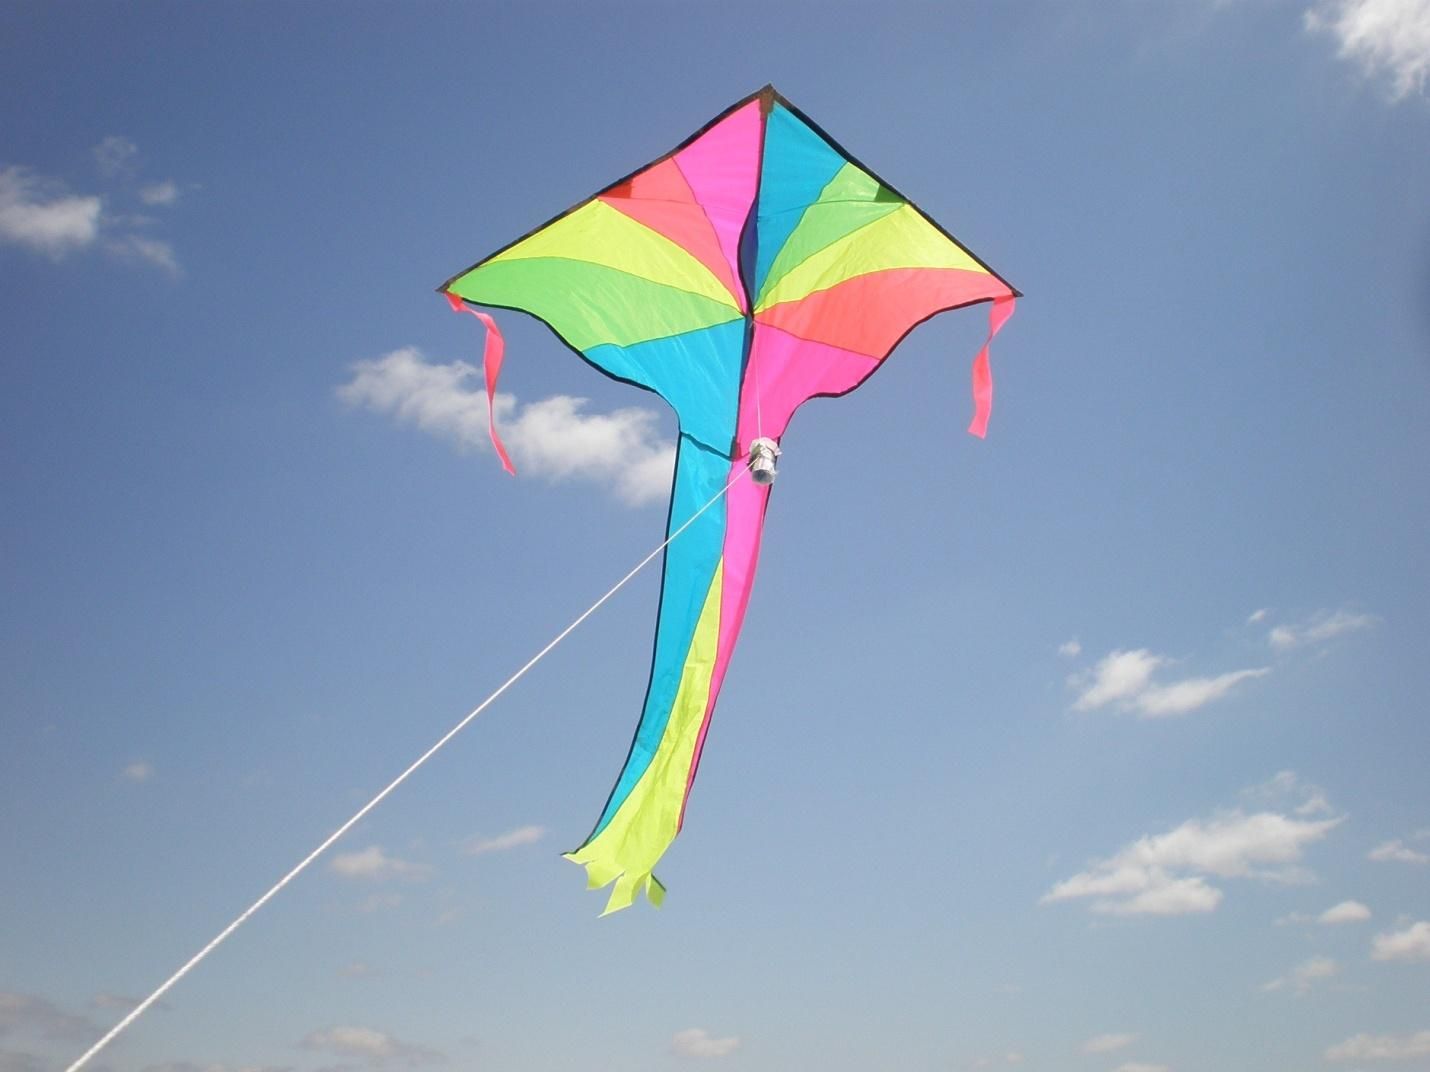 Kite Soaring in the Wind